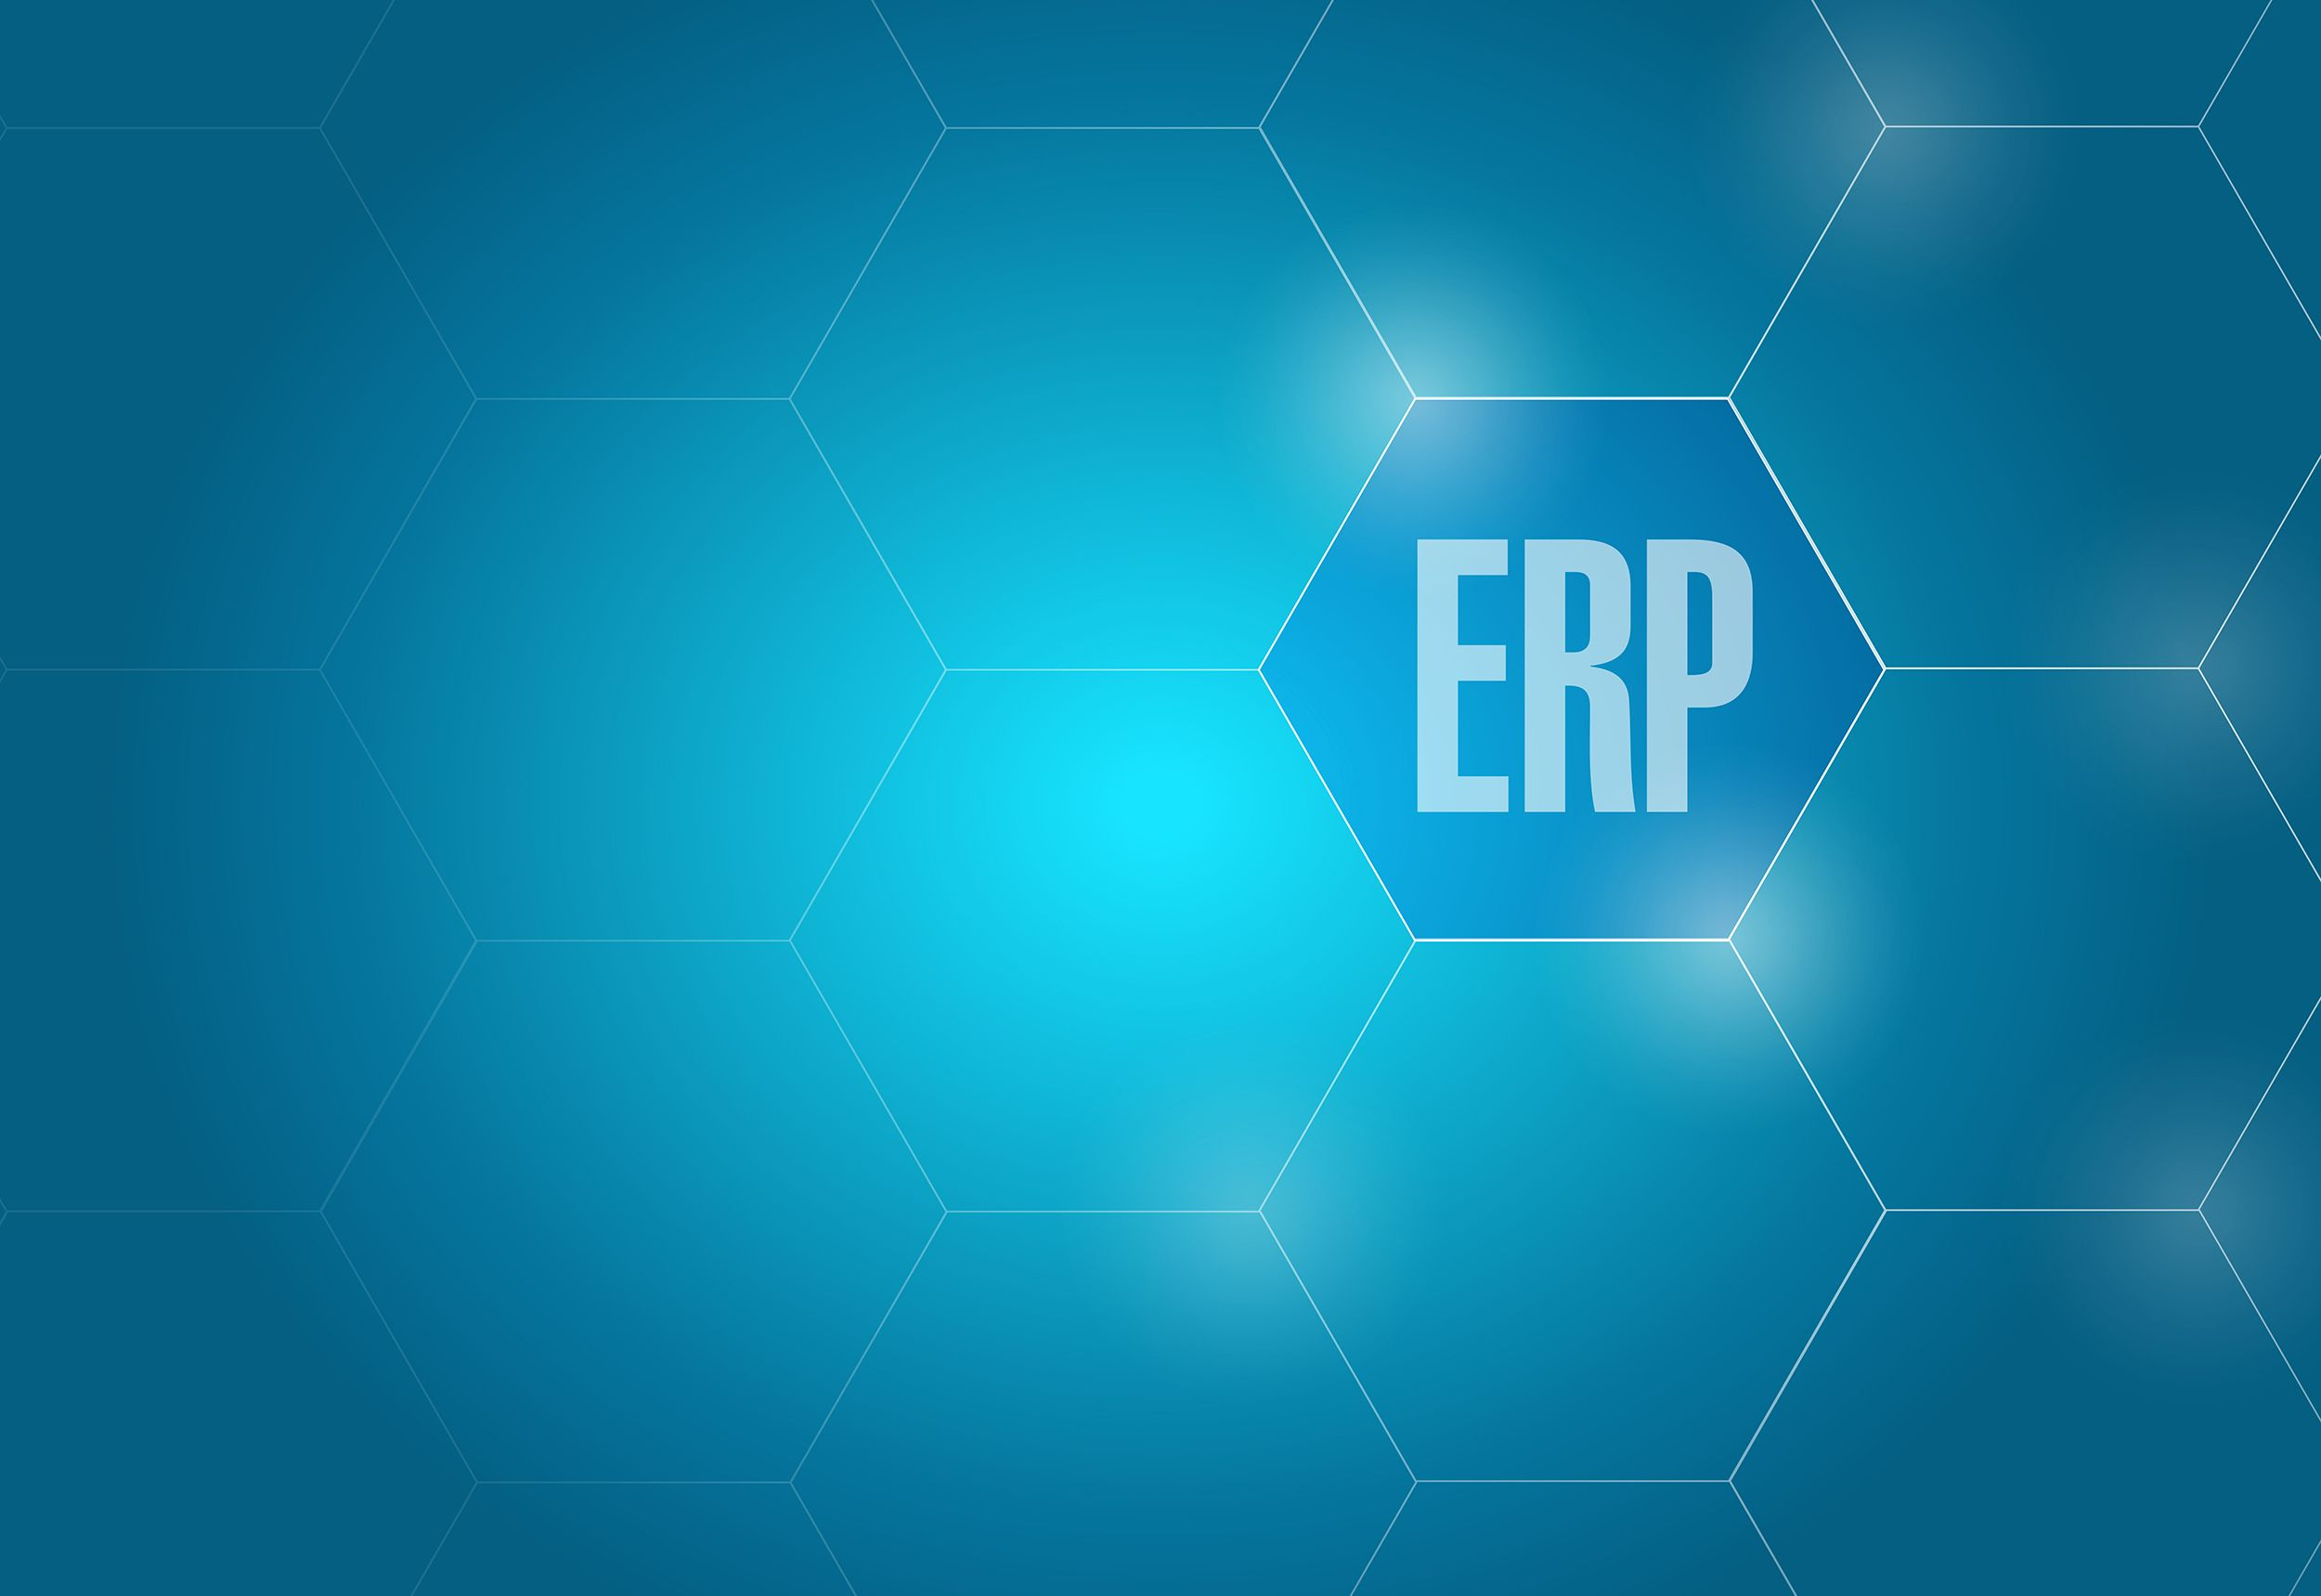 """Modernizing your integration approach will enable you to say """"yes"""" to any ERP integration requirement that comes your way"""